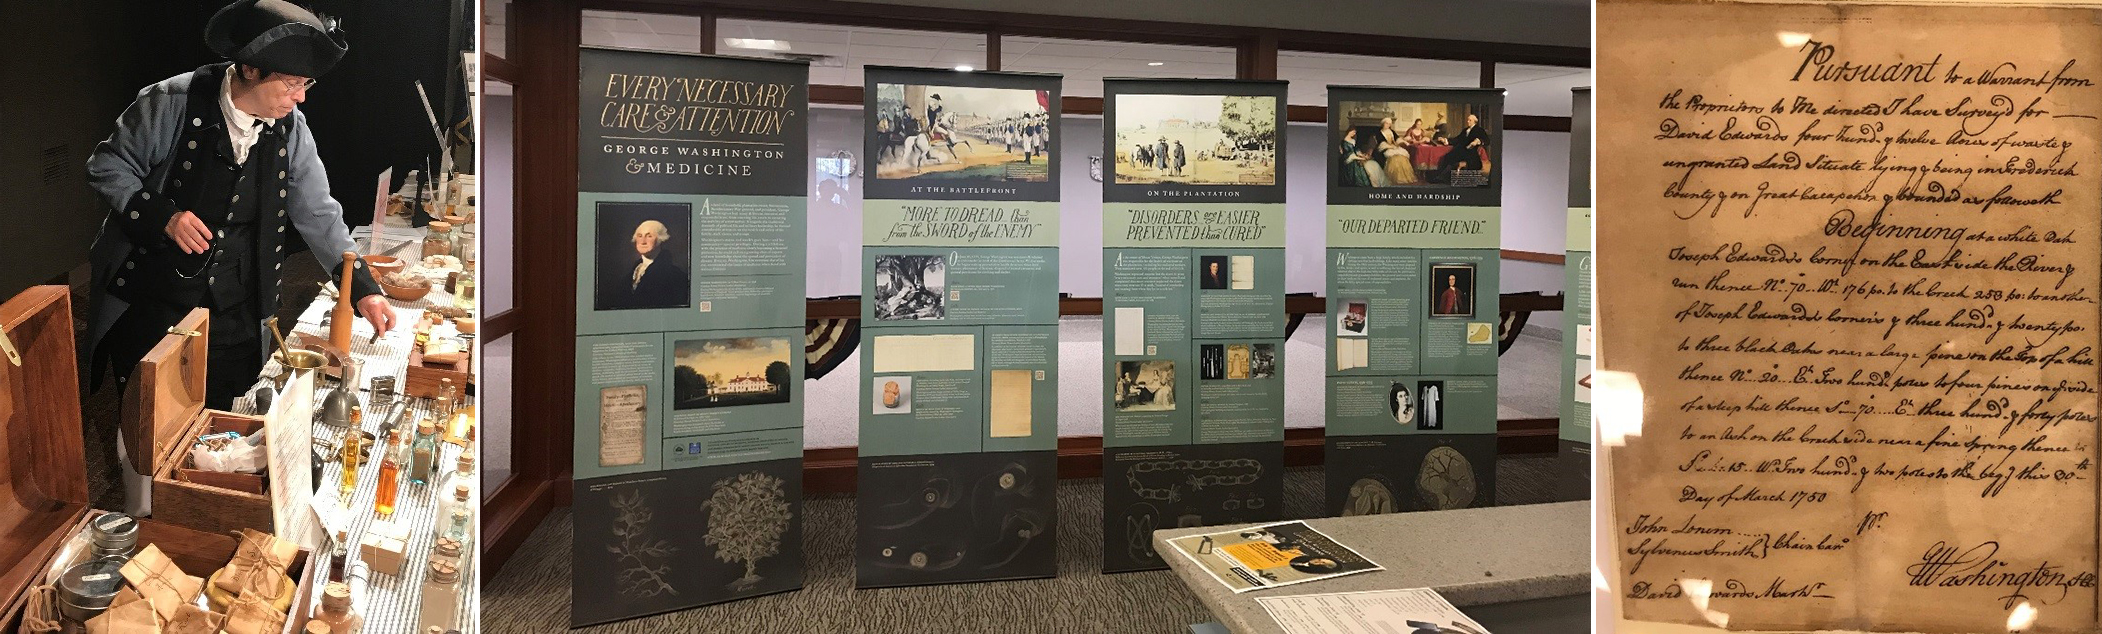 three photos: Revolutionary War surgeon re-enacter, exhibit banners, and a document from George Washington